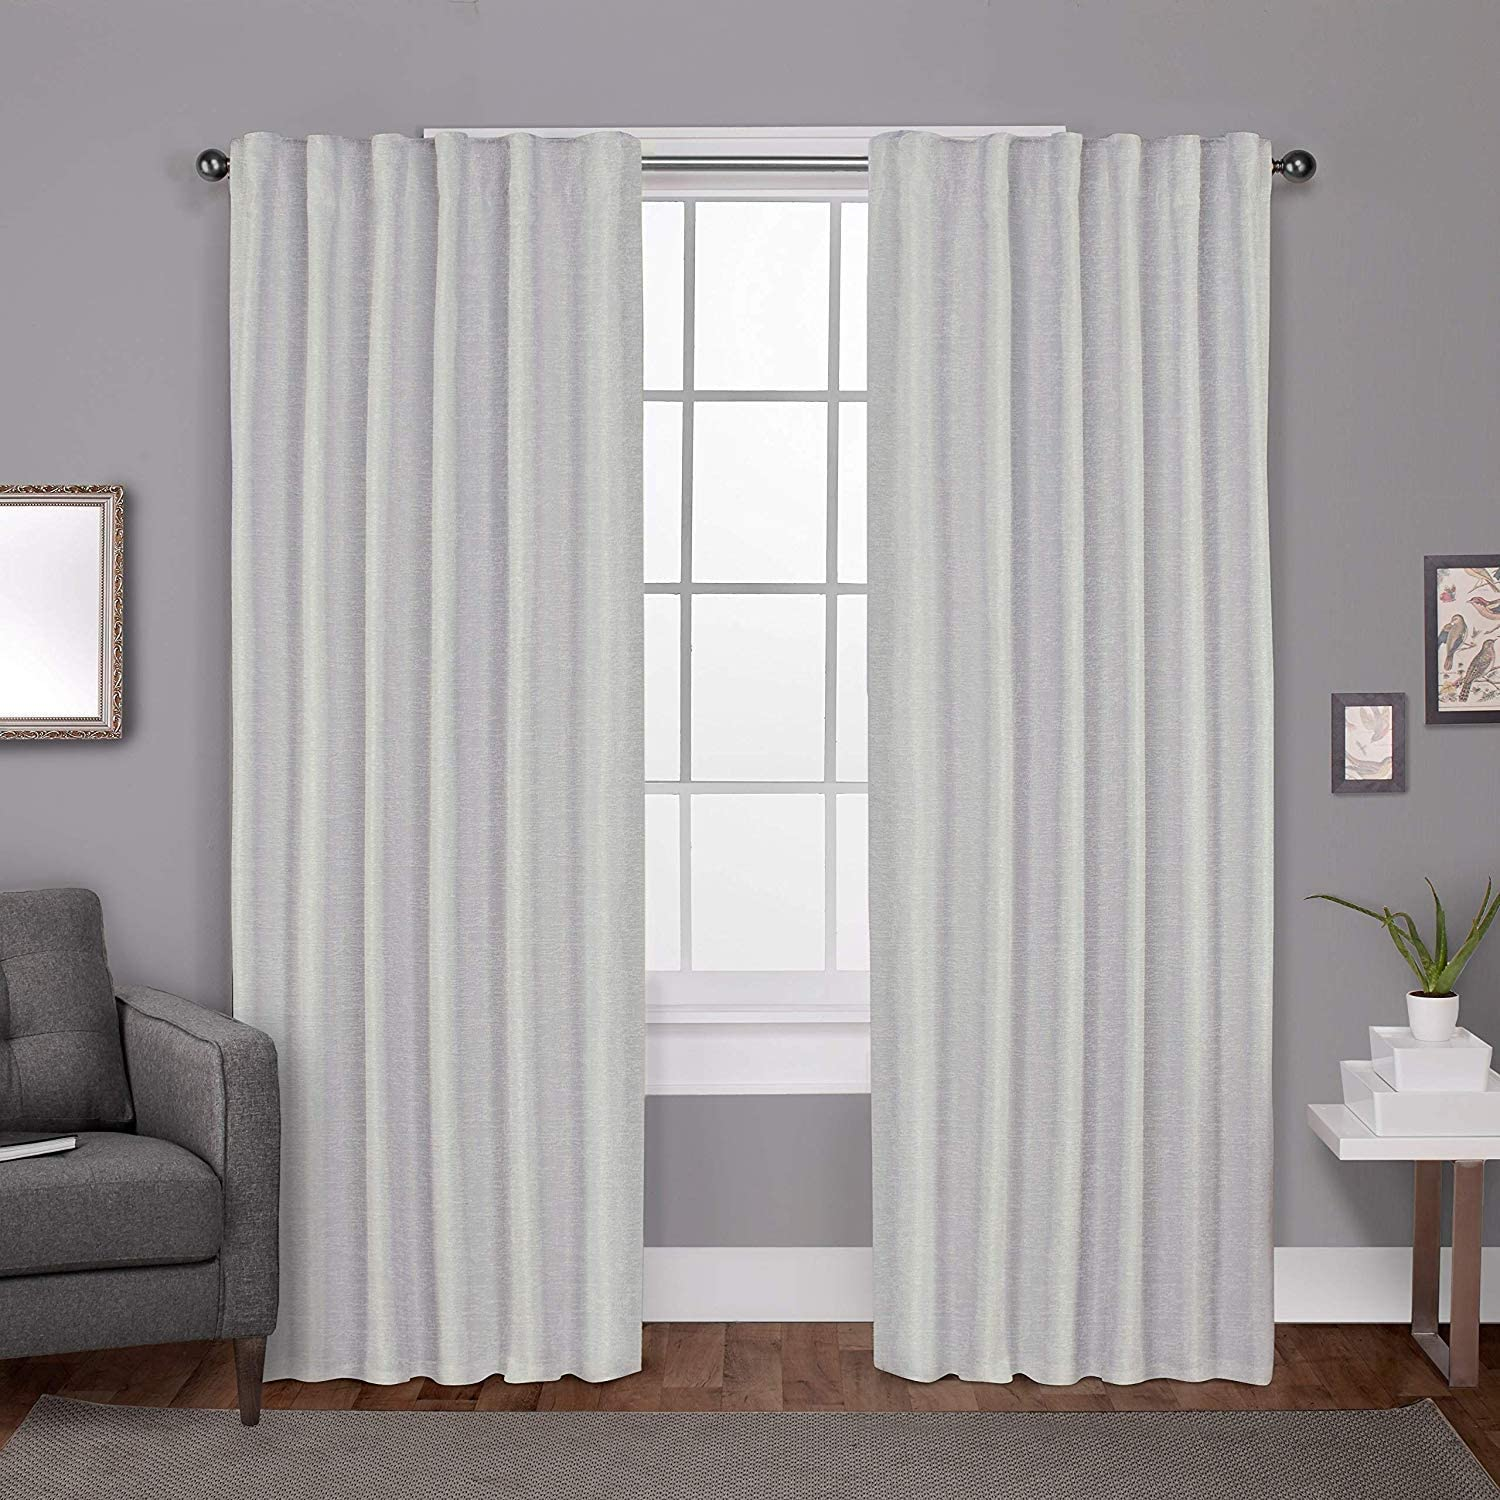 Amazon Com Magic Drapes Window Curtains For Office Door Windows Nursery Thermal Blackout Energy Saving Sound Block Curtain Hooks Rings Grey Curtains For Room Divider Dividing Rooms Hall 42x45 Light Grey Home Kitchen,Farmhouse Front Door Wreath Ideas